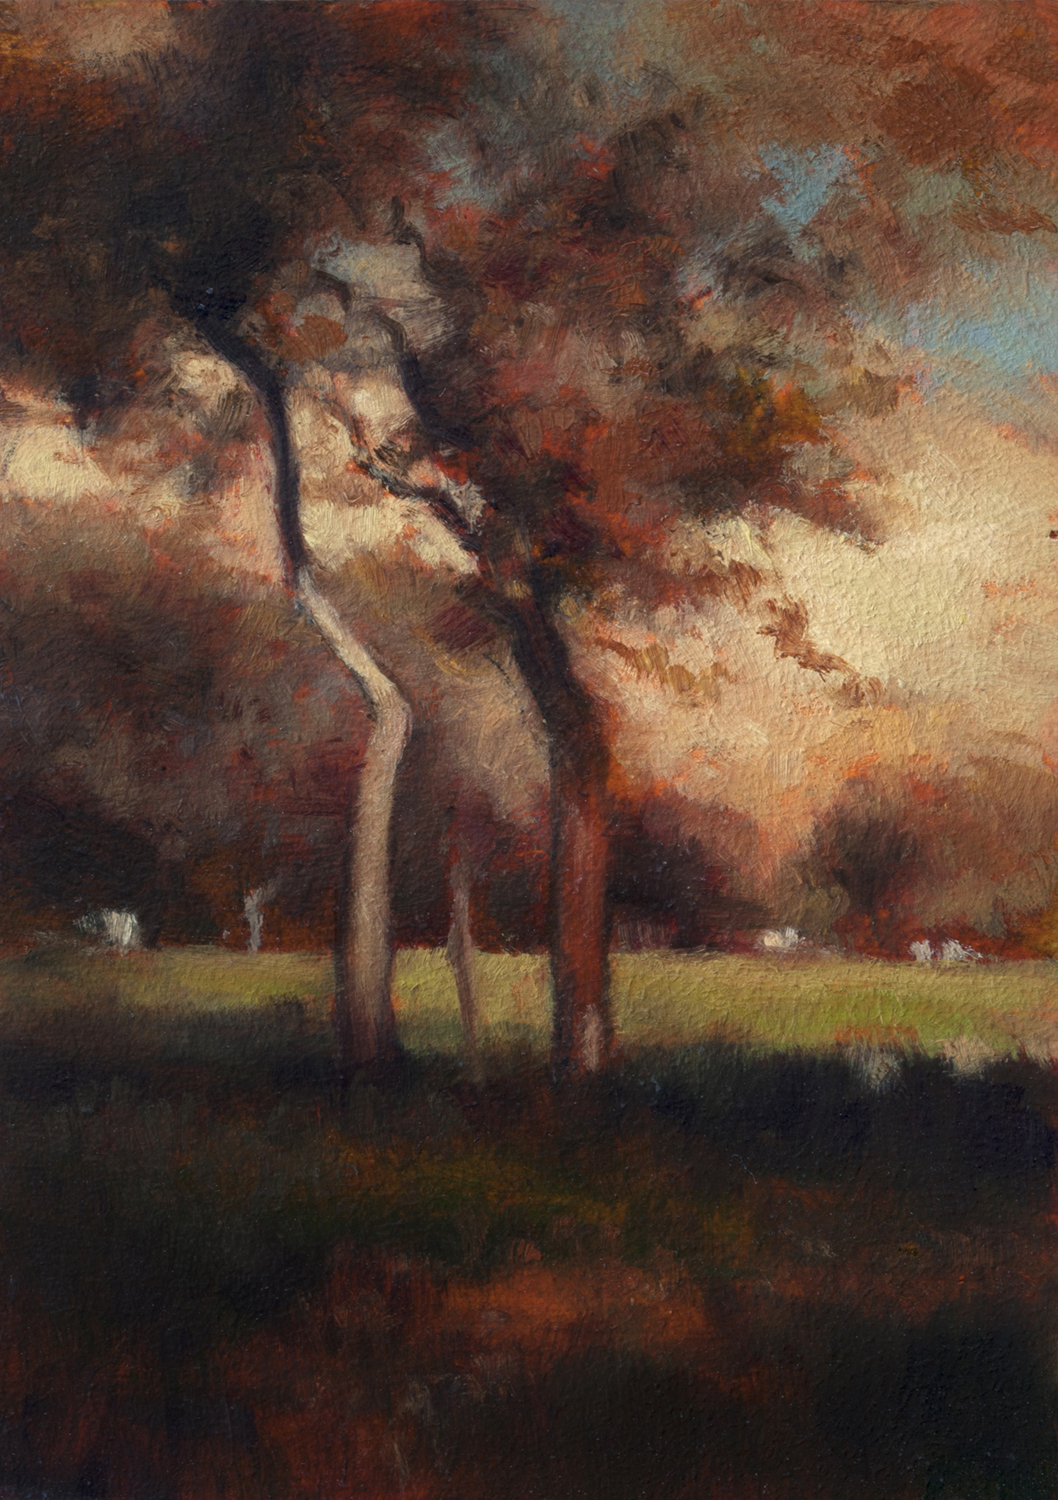 Study after: George Inness California by M Francis McCarthy - 5x7 Oil on Wood Panel